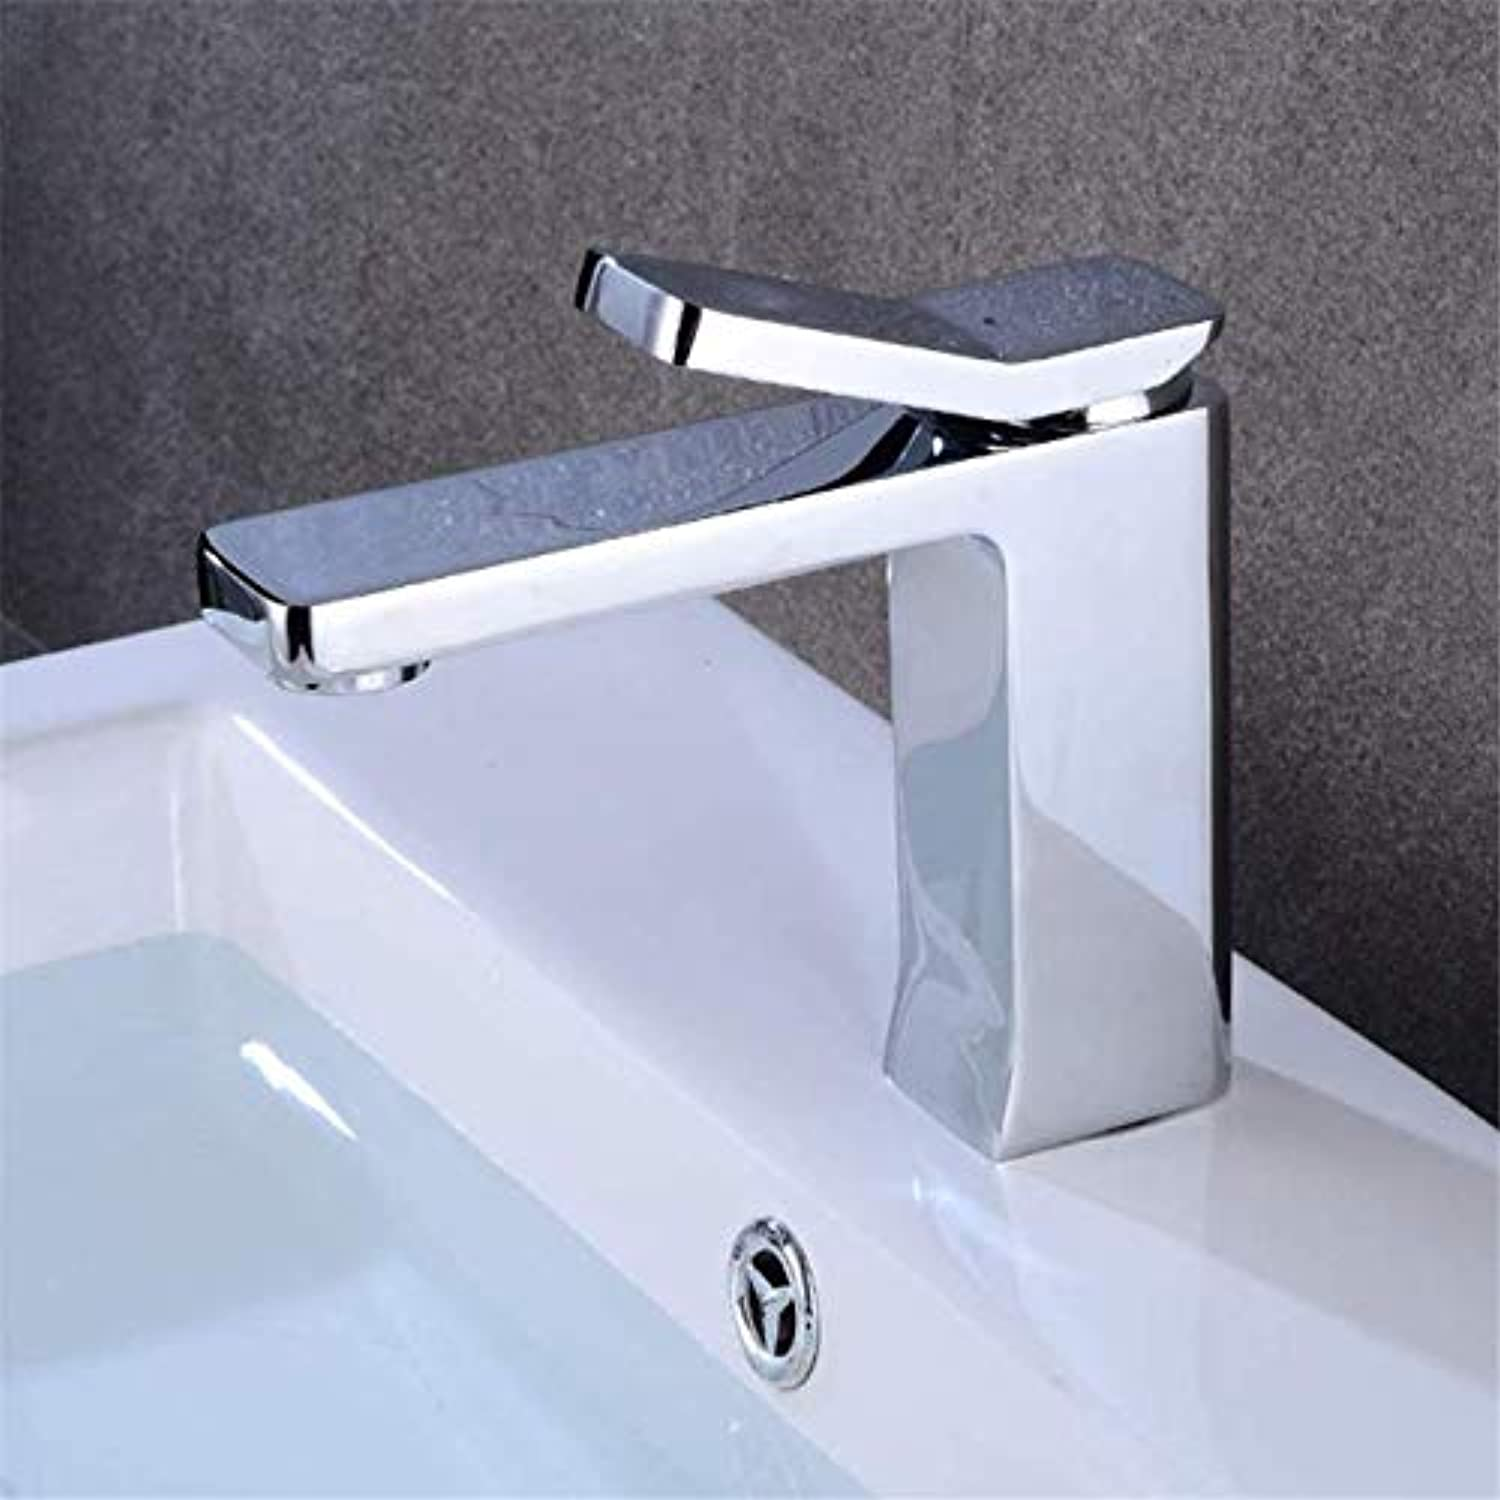 Stylish Bathroom Sink Toilet Faucet Modern Single Handle Basin Faucet Chrome-Plated Mirror Effect Brass bar Faucet